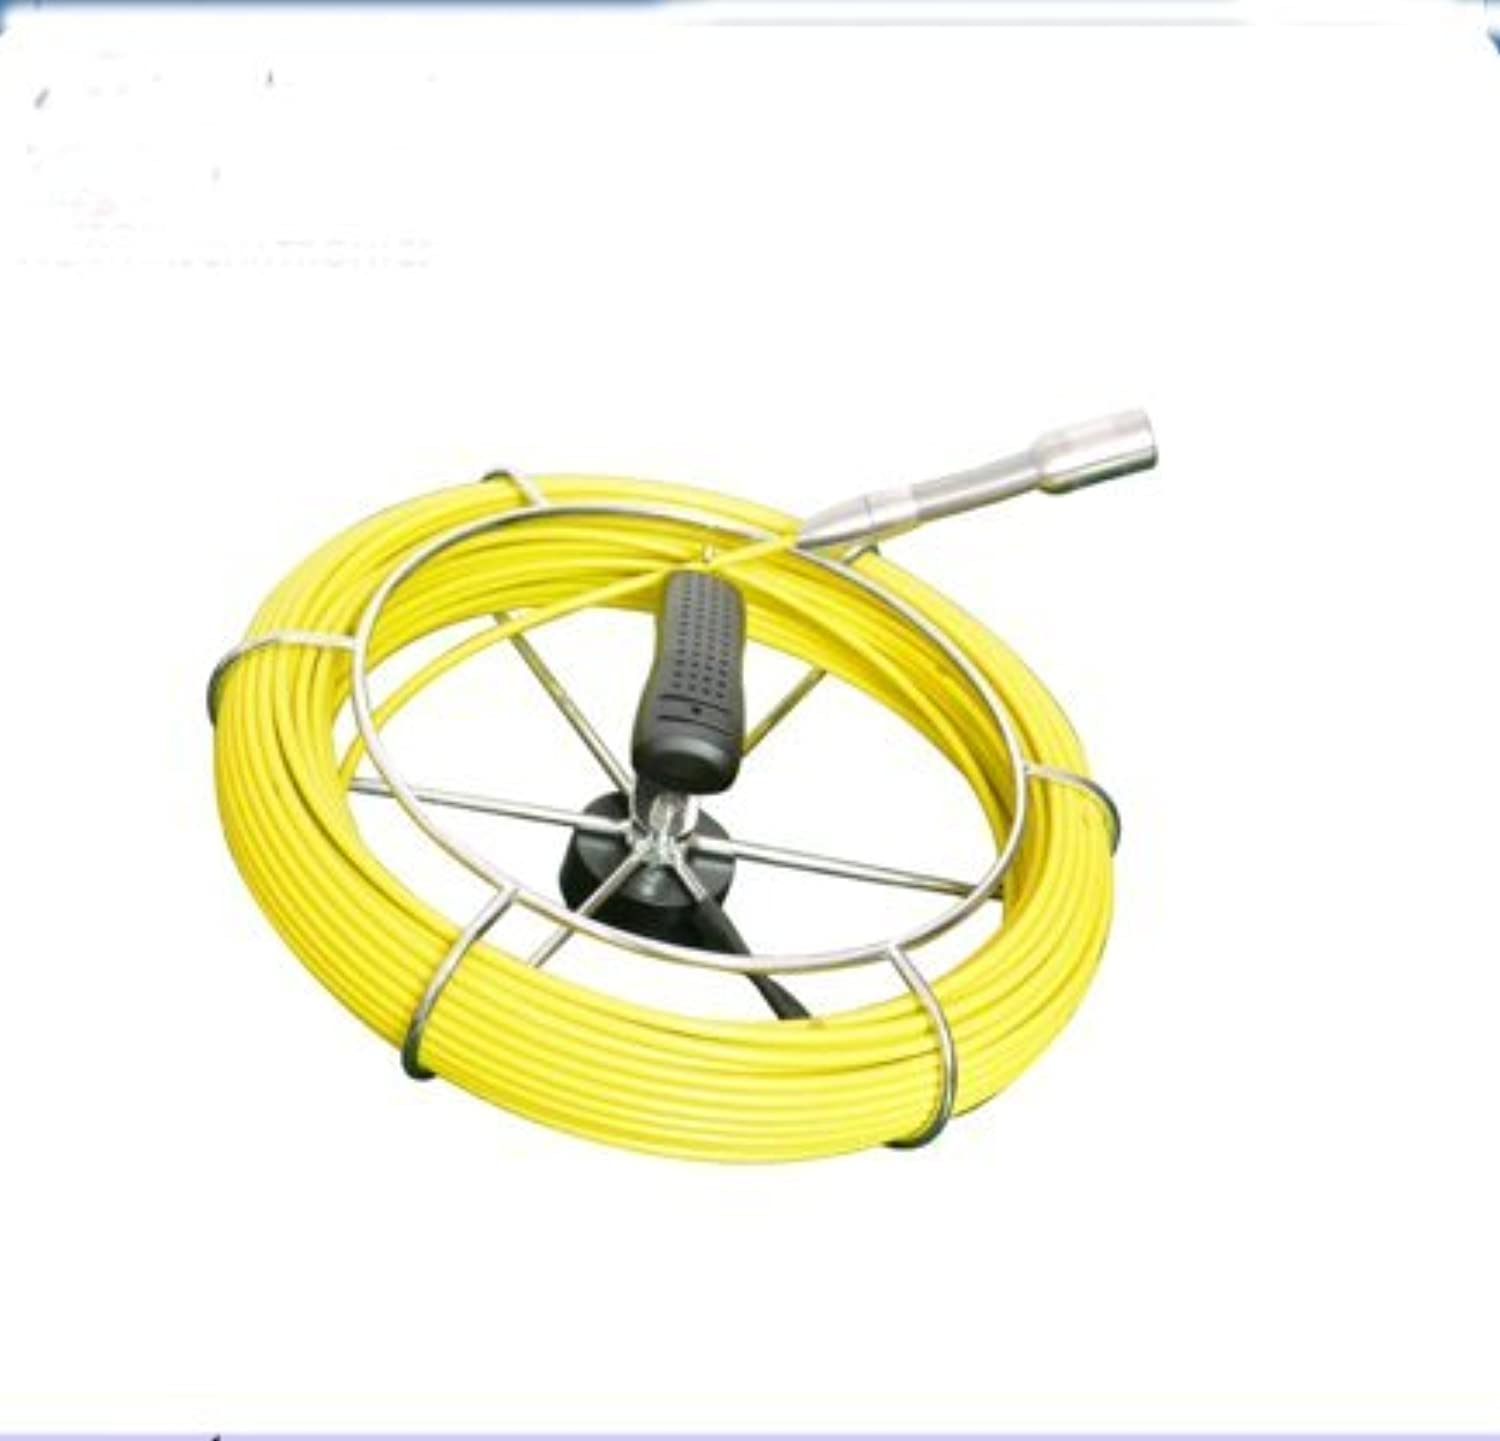 KOHSTAR Sewer pipe inspection camera accessories 30m fiberglass push rod cable with waterproof video inspection camera